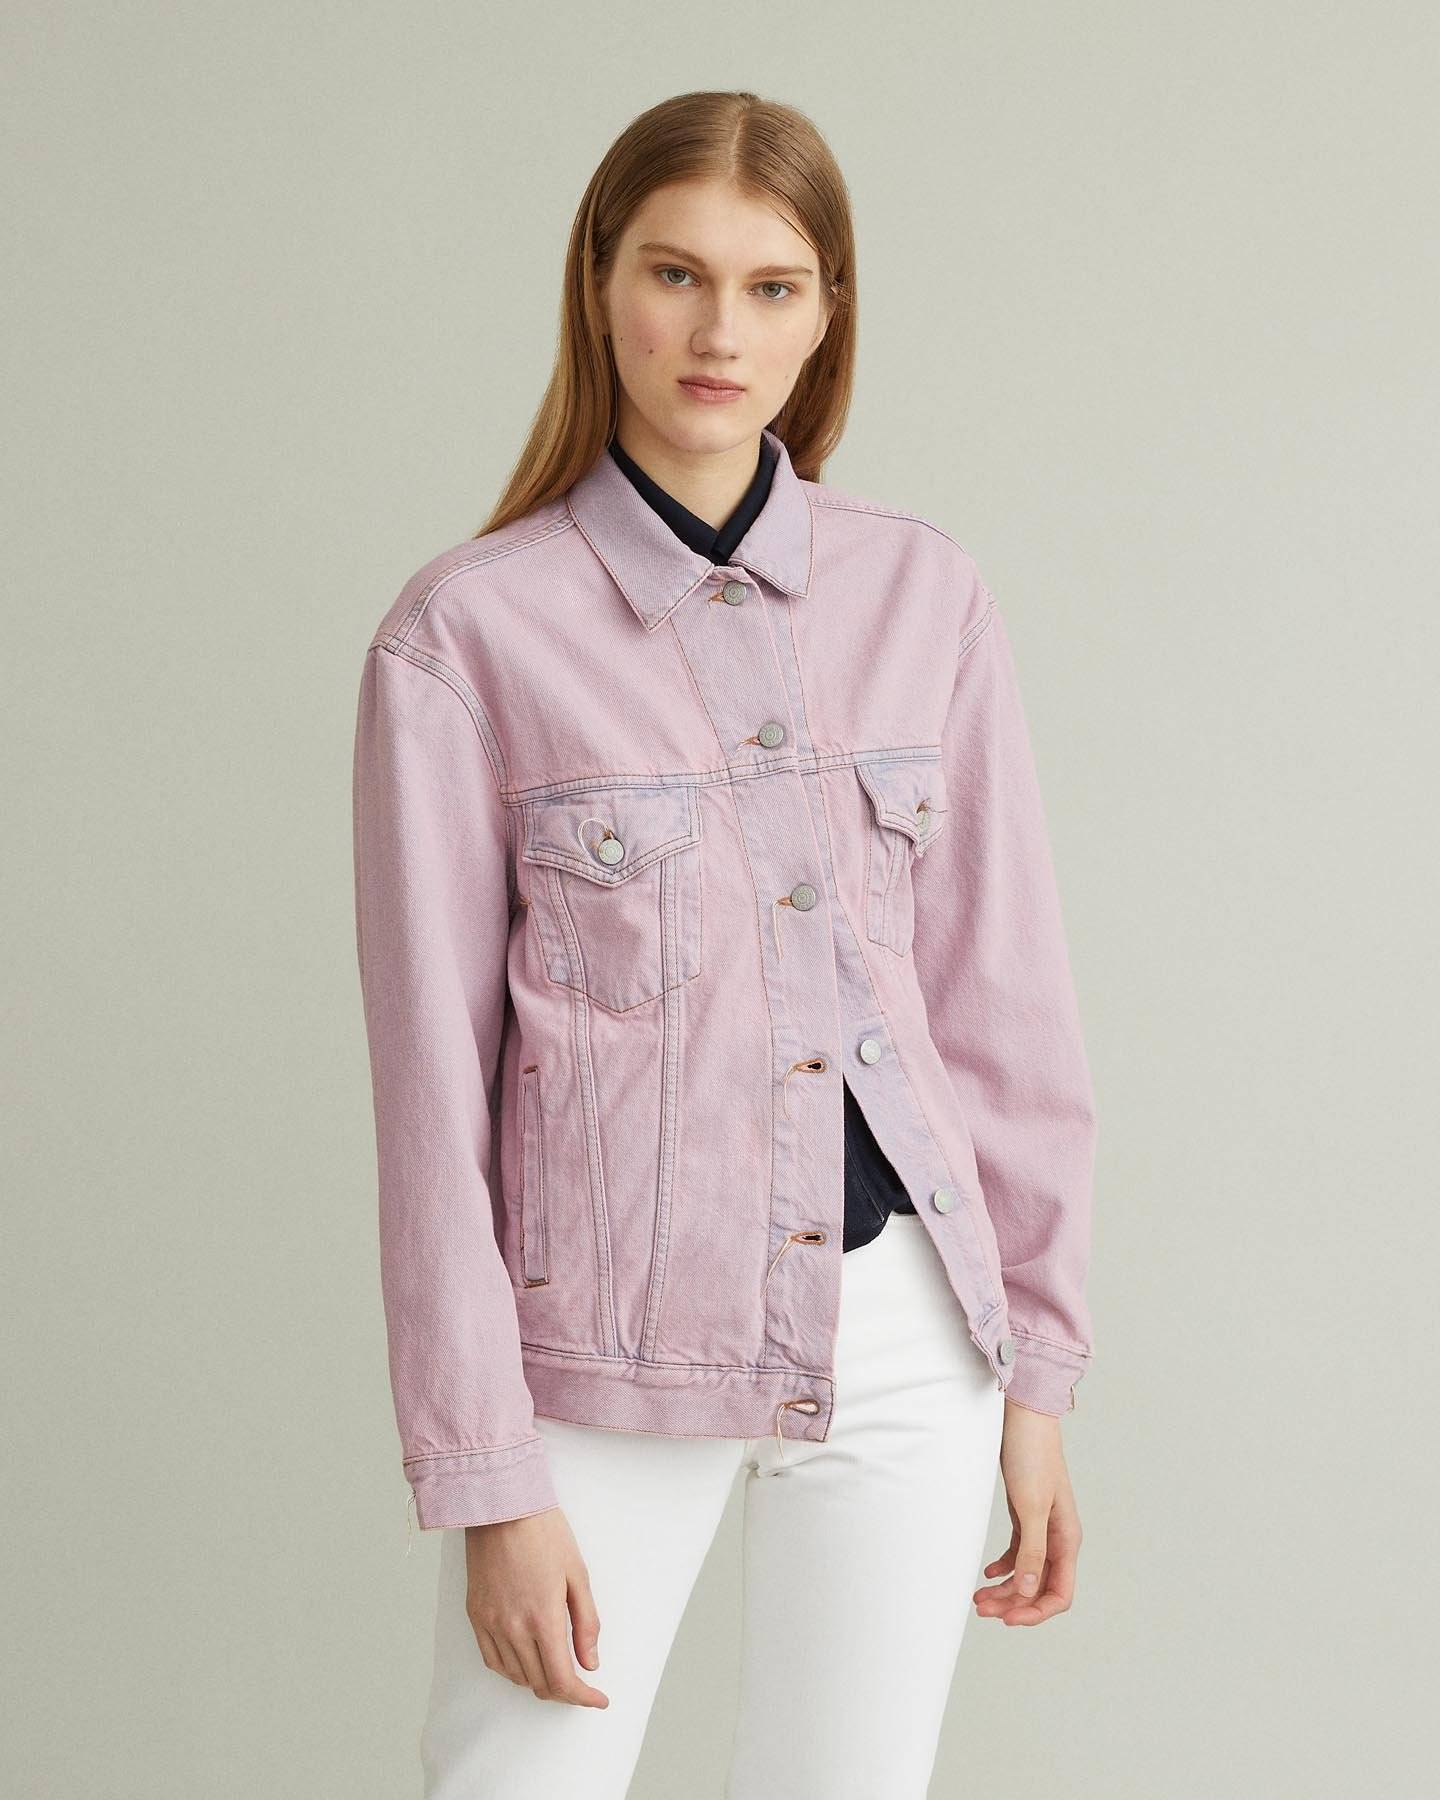 /products/2000-pink-and-blue-denim-jacket